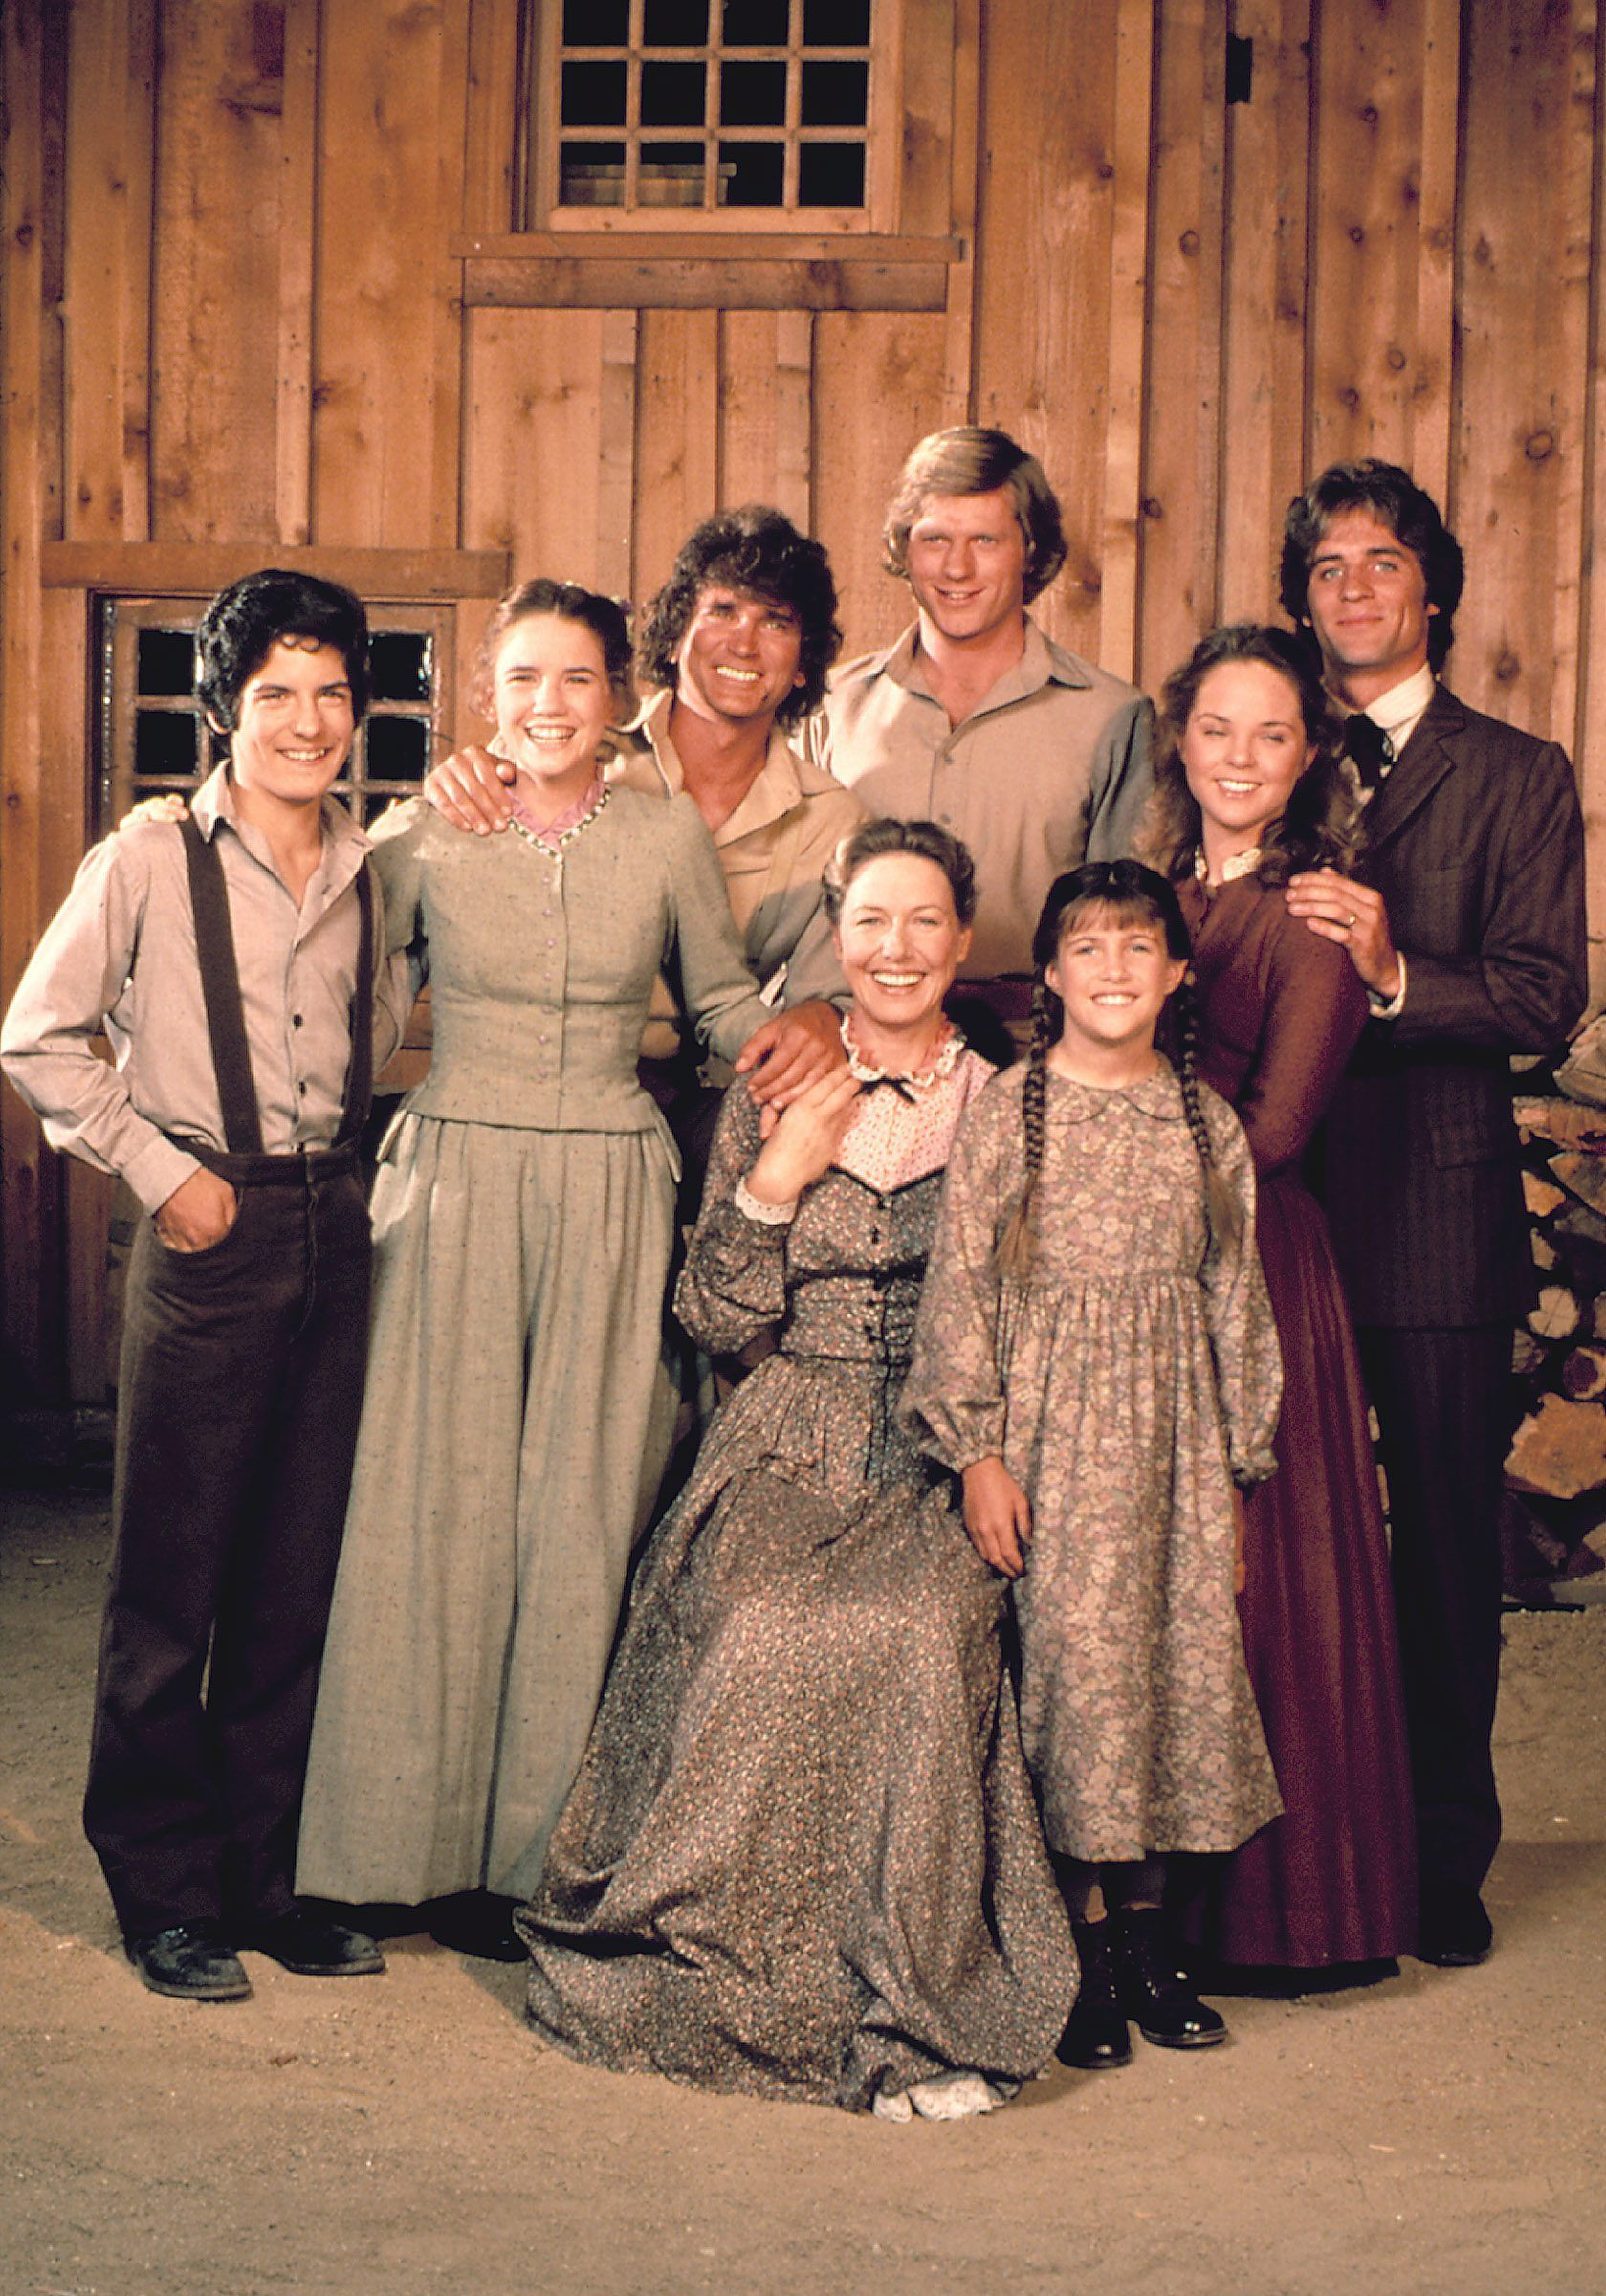 A Little House On The Prairie Reboot Is In The Works